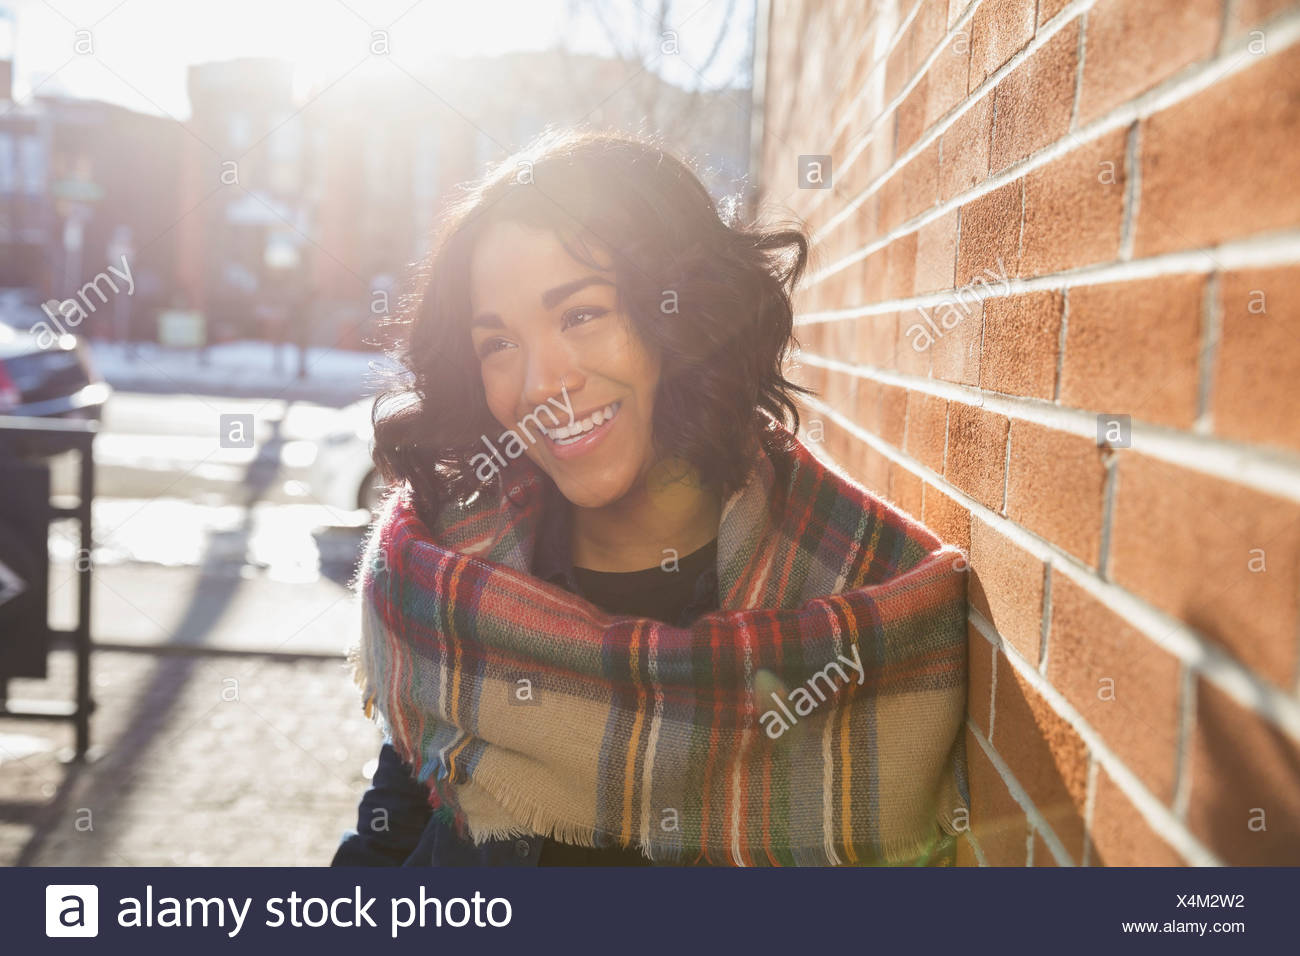 Smiling woman standing by brick wall Photo Stock